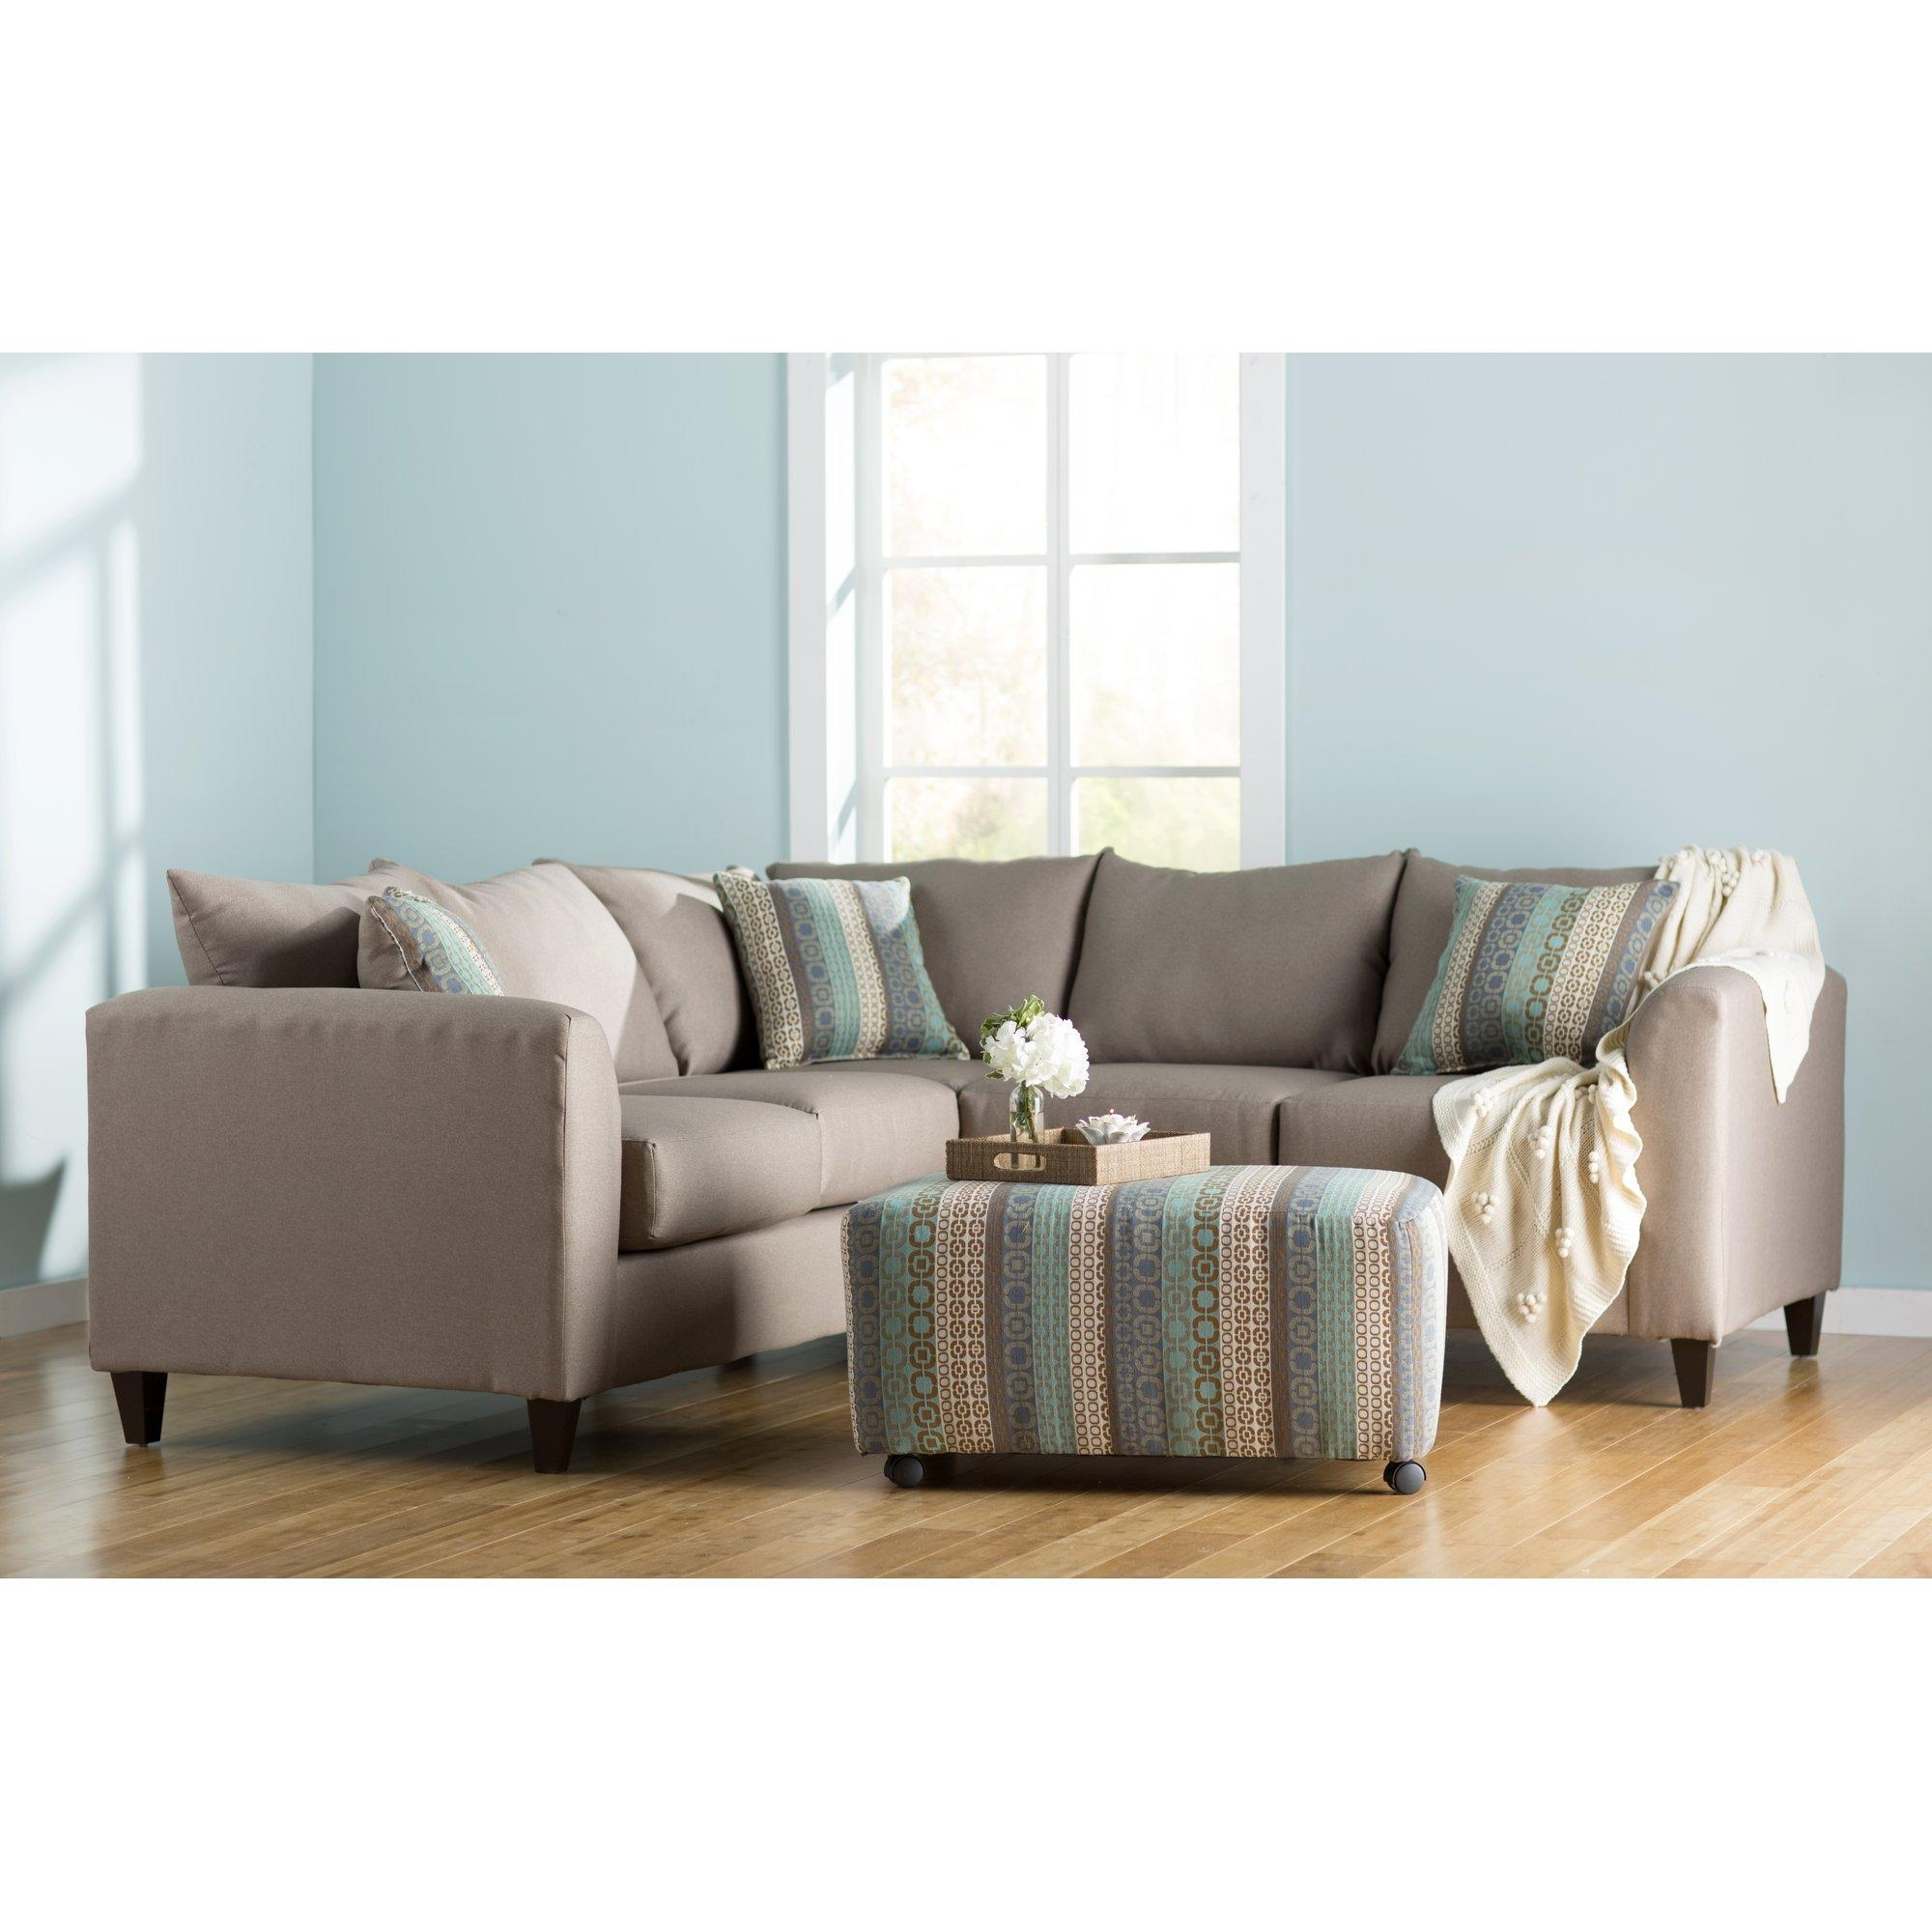 Beachcrest Home Serta Sectional & Reviews | Wayfair Supply Intended For Serta Sectional (View 6 of 20)